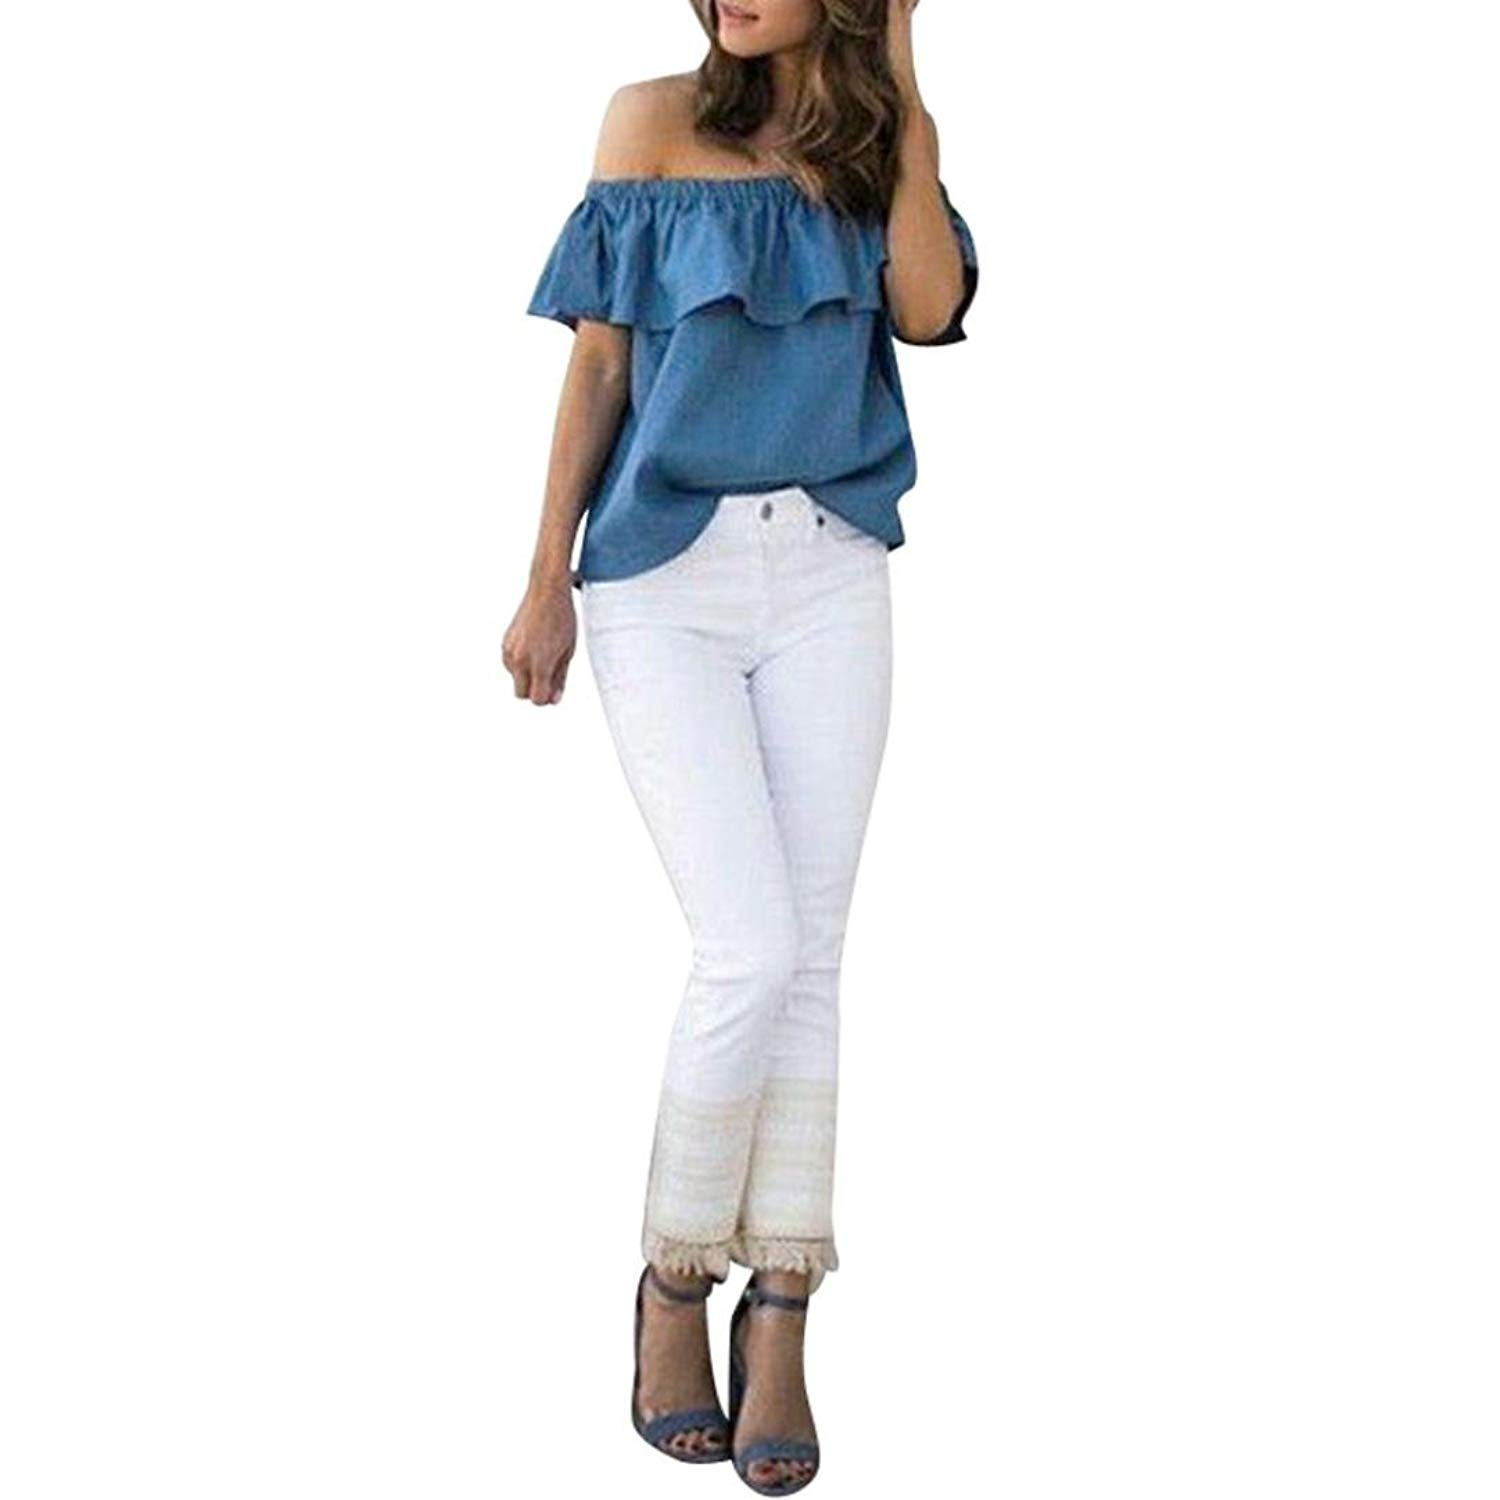 Women Sexy Summer Off Shoulder Tops Casual Party Shirt By Fimkaul